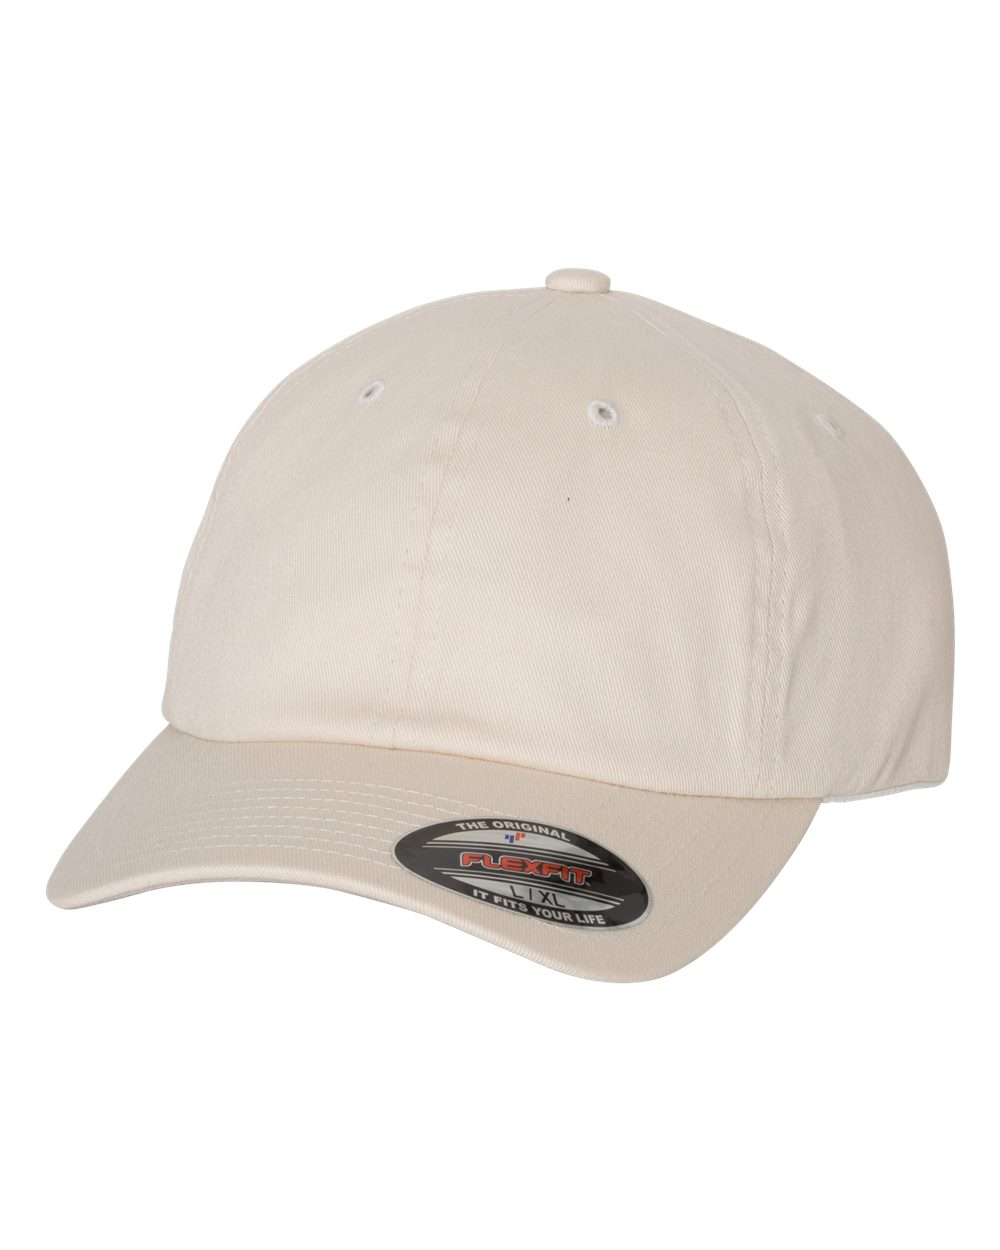 49f449518af Flexfit 6745 - Cotton Twill Dad s Cap  6.44 - Headwear